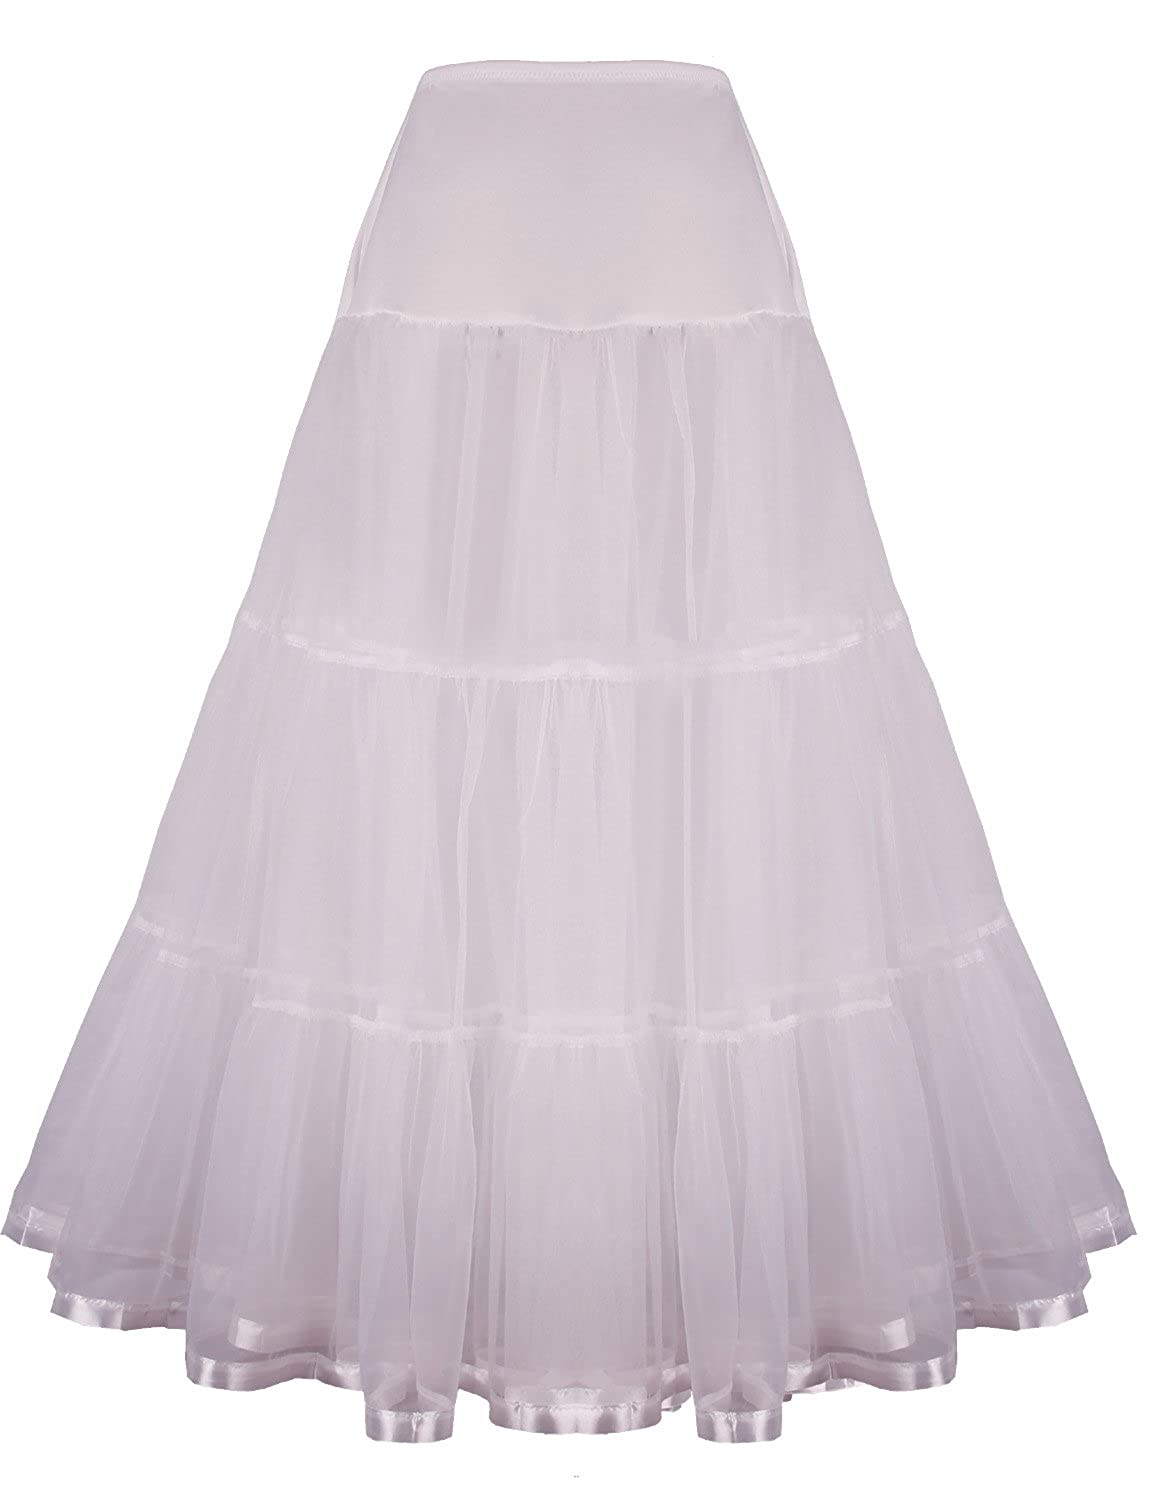 Crinoline Skirt | Crinoline Slips | Crinoline Petticoat Floor Length Petticoat Long Underskirt for Formal Dress $14.99 AT vintagedancer.com